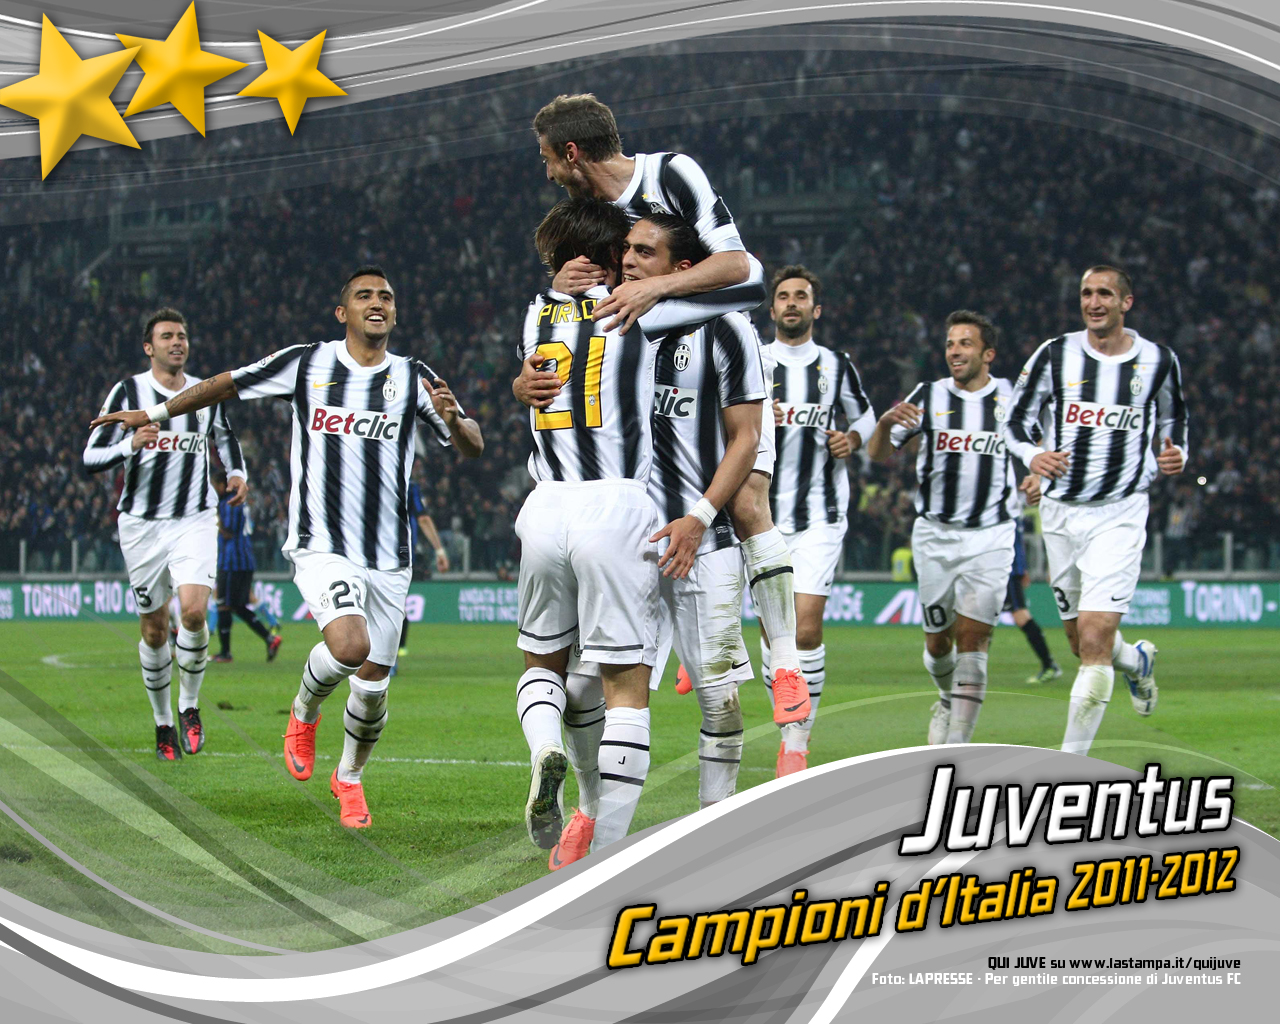 juventus - photo #21